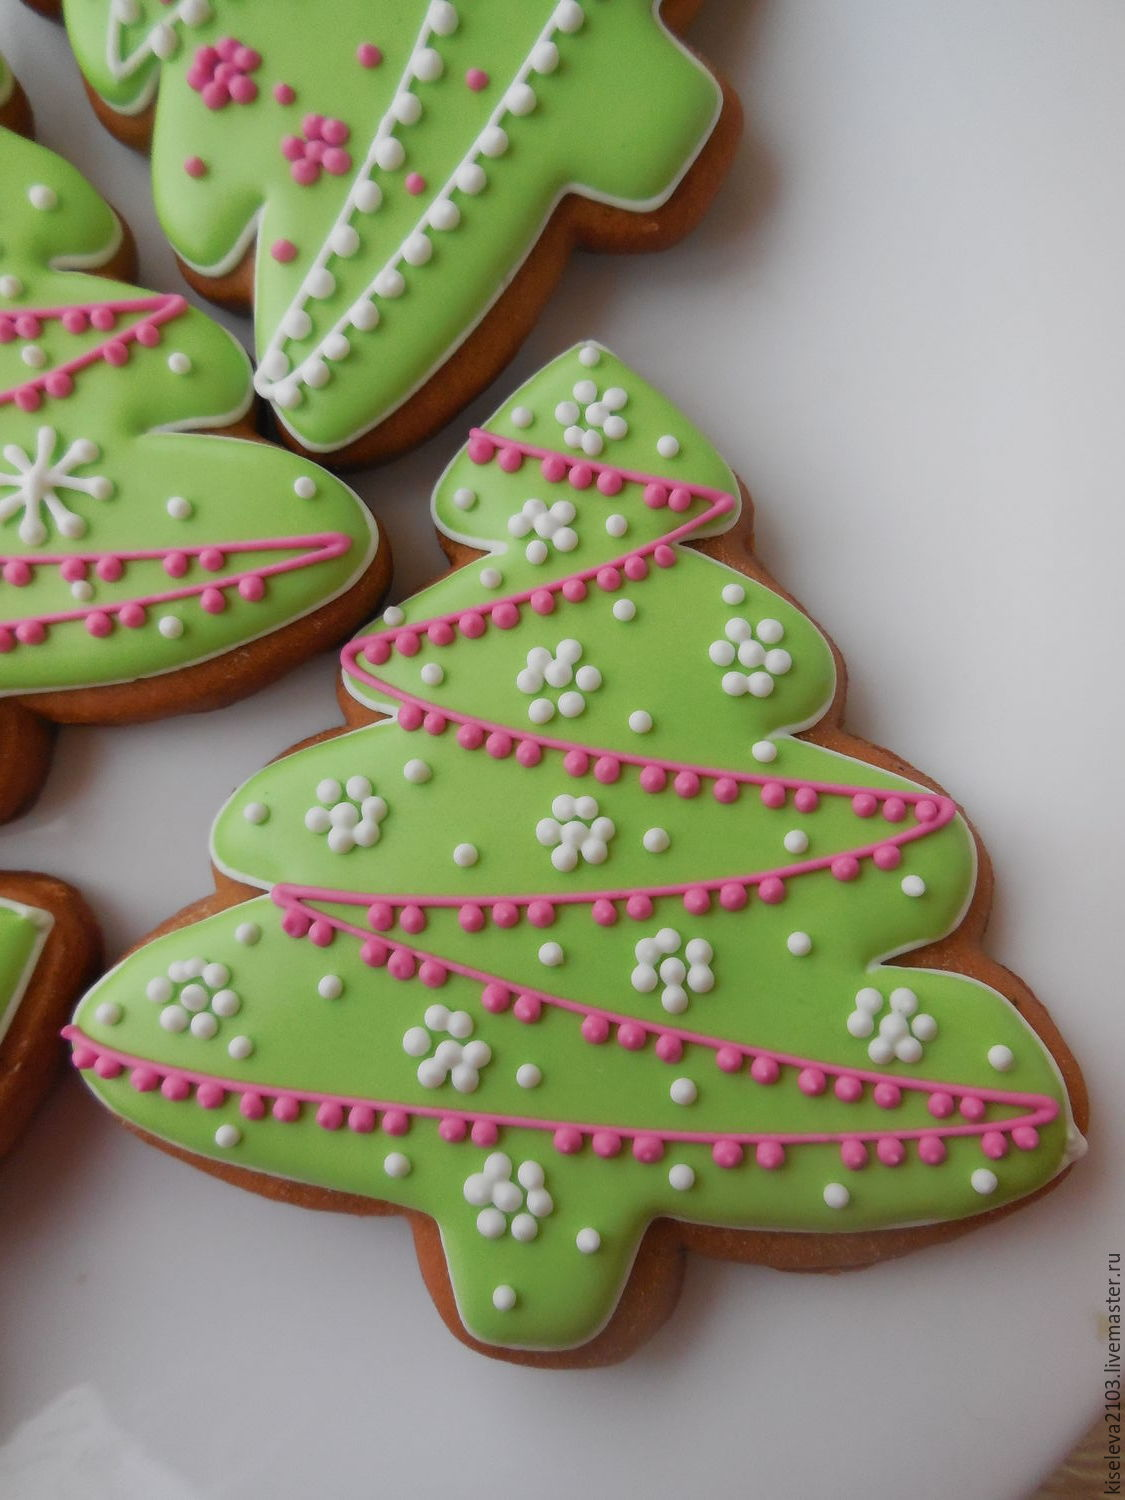 Gingerbread Christmas Tree Culinary Souvenir Shop Online On Livemaster With Shipping 34fv7com Dubna